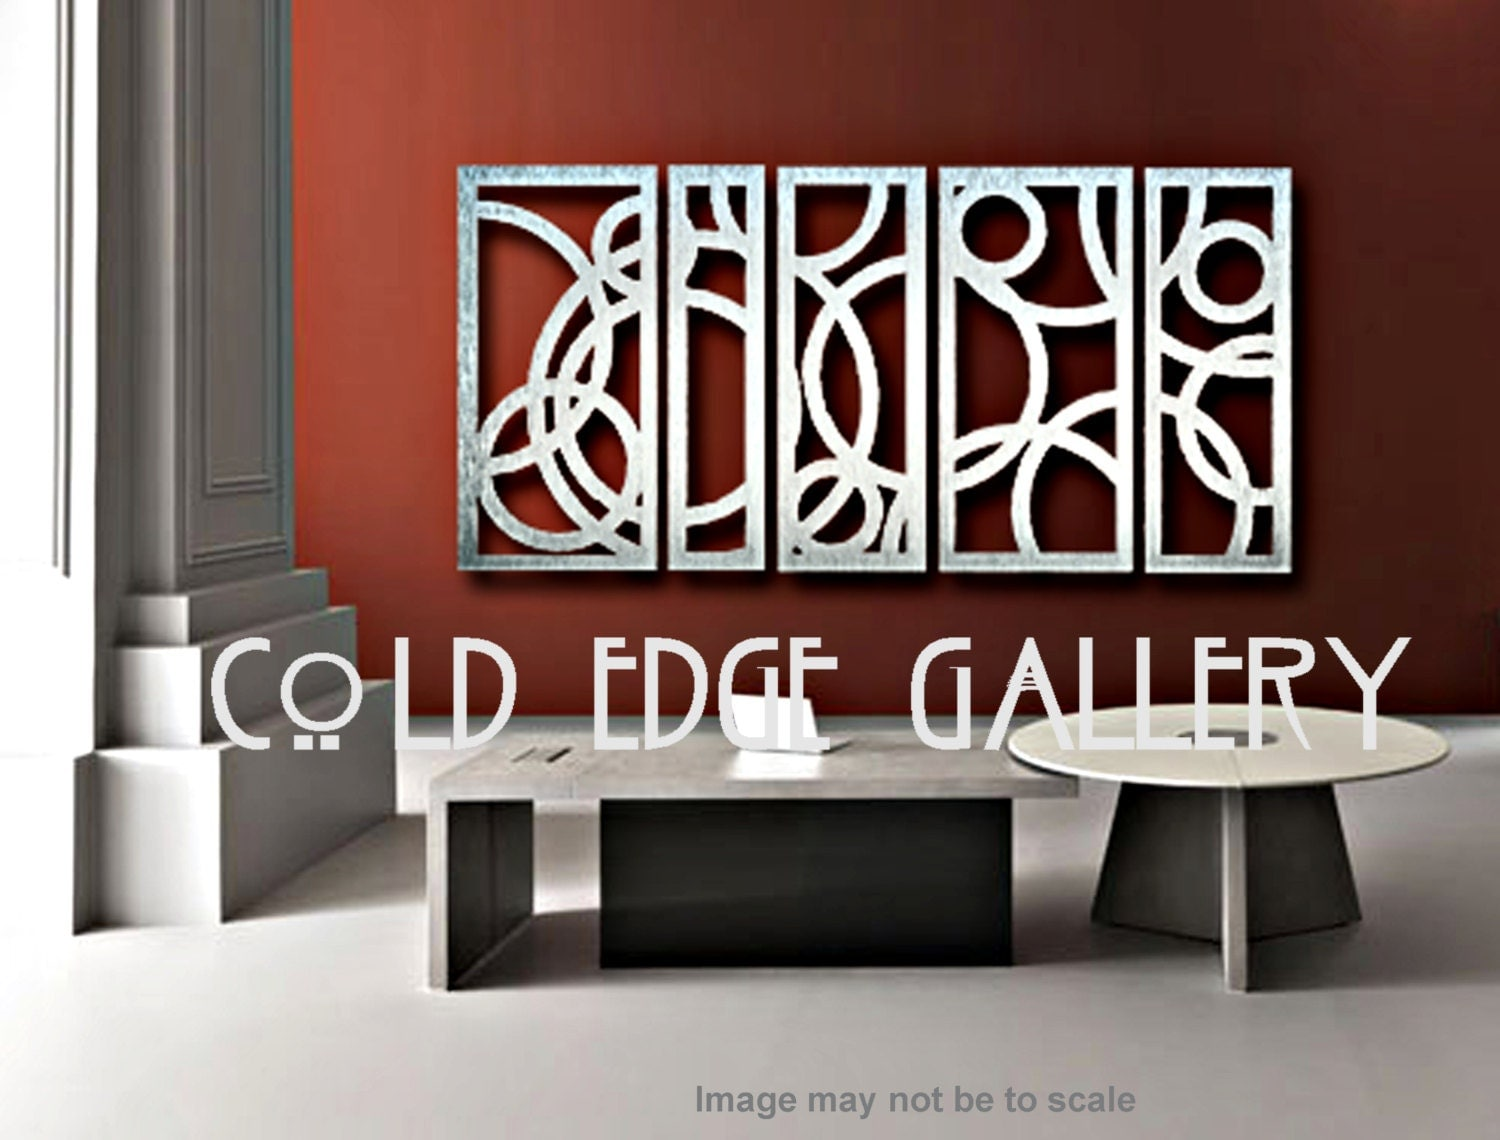 Extra large art metal wall art art decor by coldedgegallery for Big wall decor